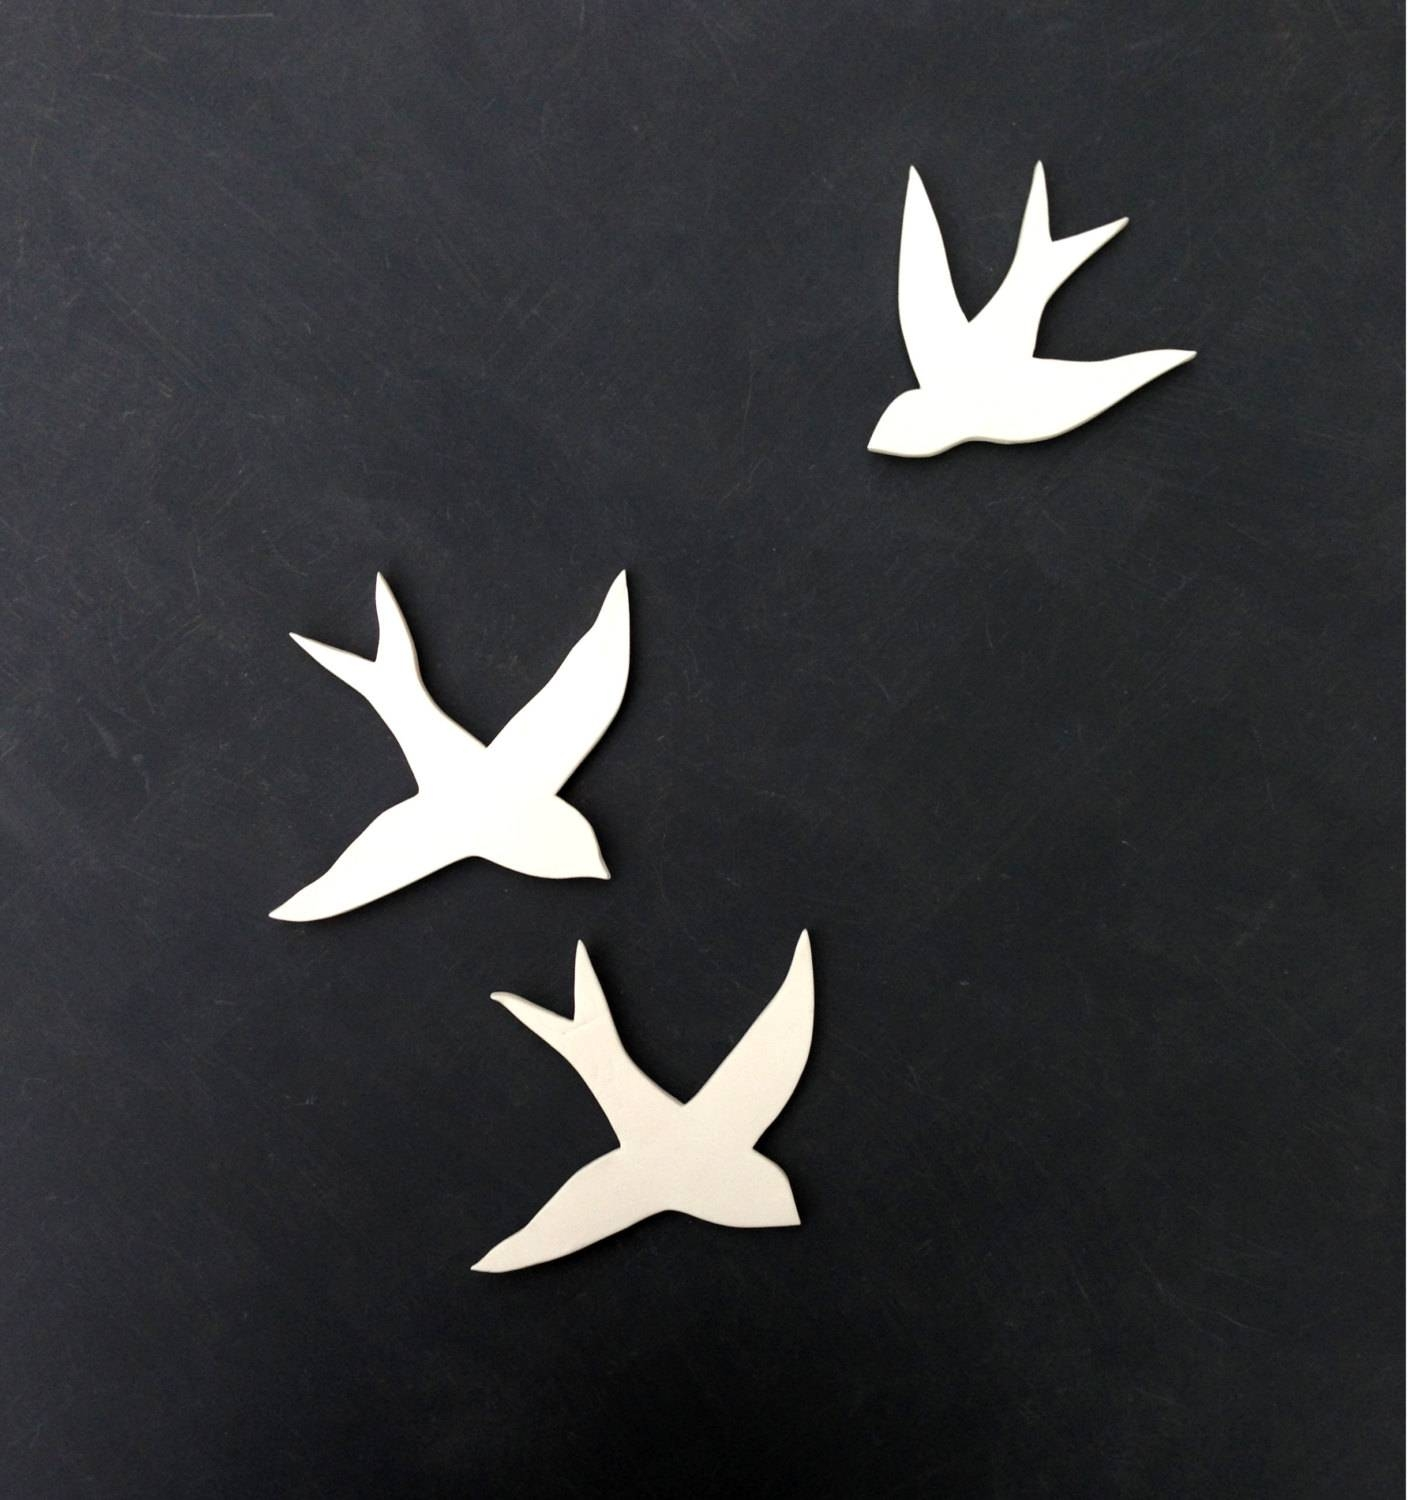 Wall Art Birds Set Of Three Handmade Porcelain Swallows With Regard To Most Current Ceramic Bird Wall Art (View 24 of 30)